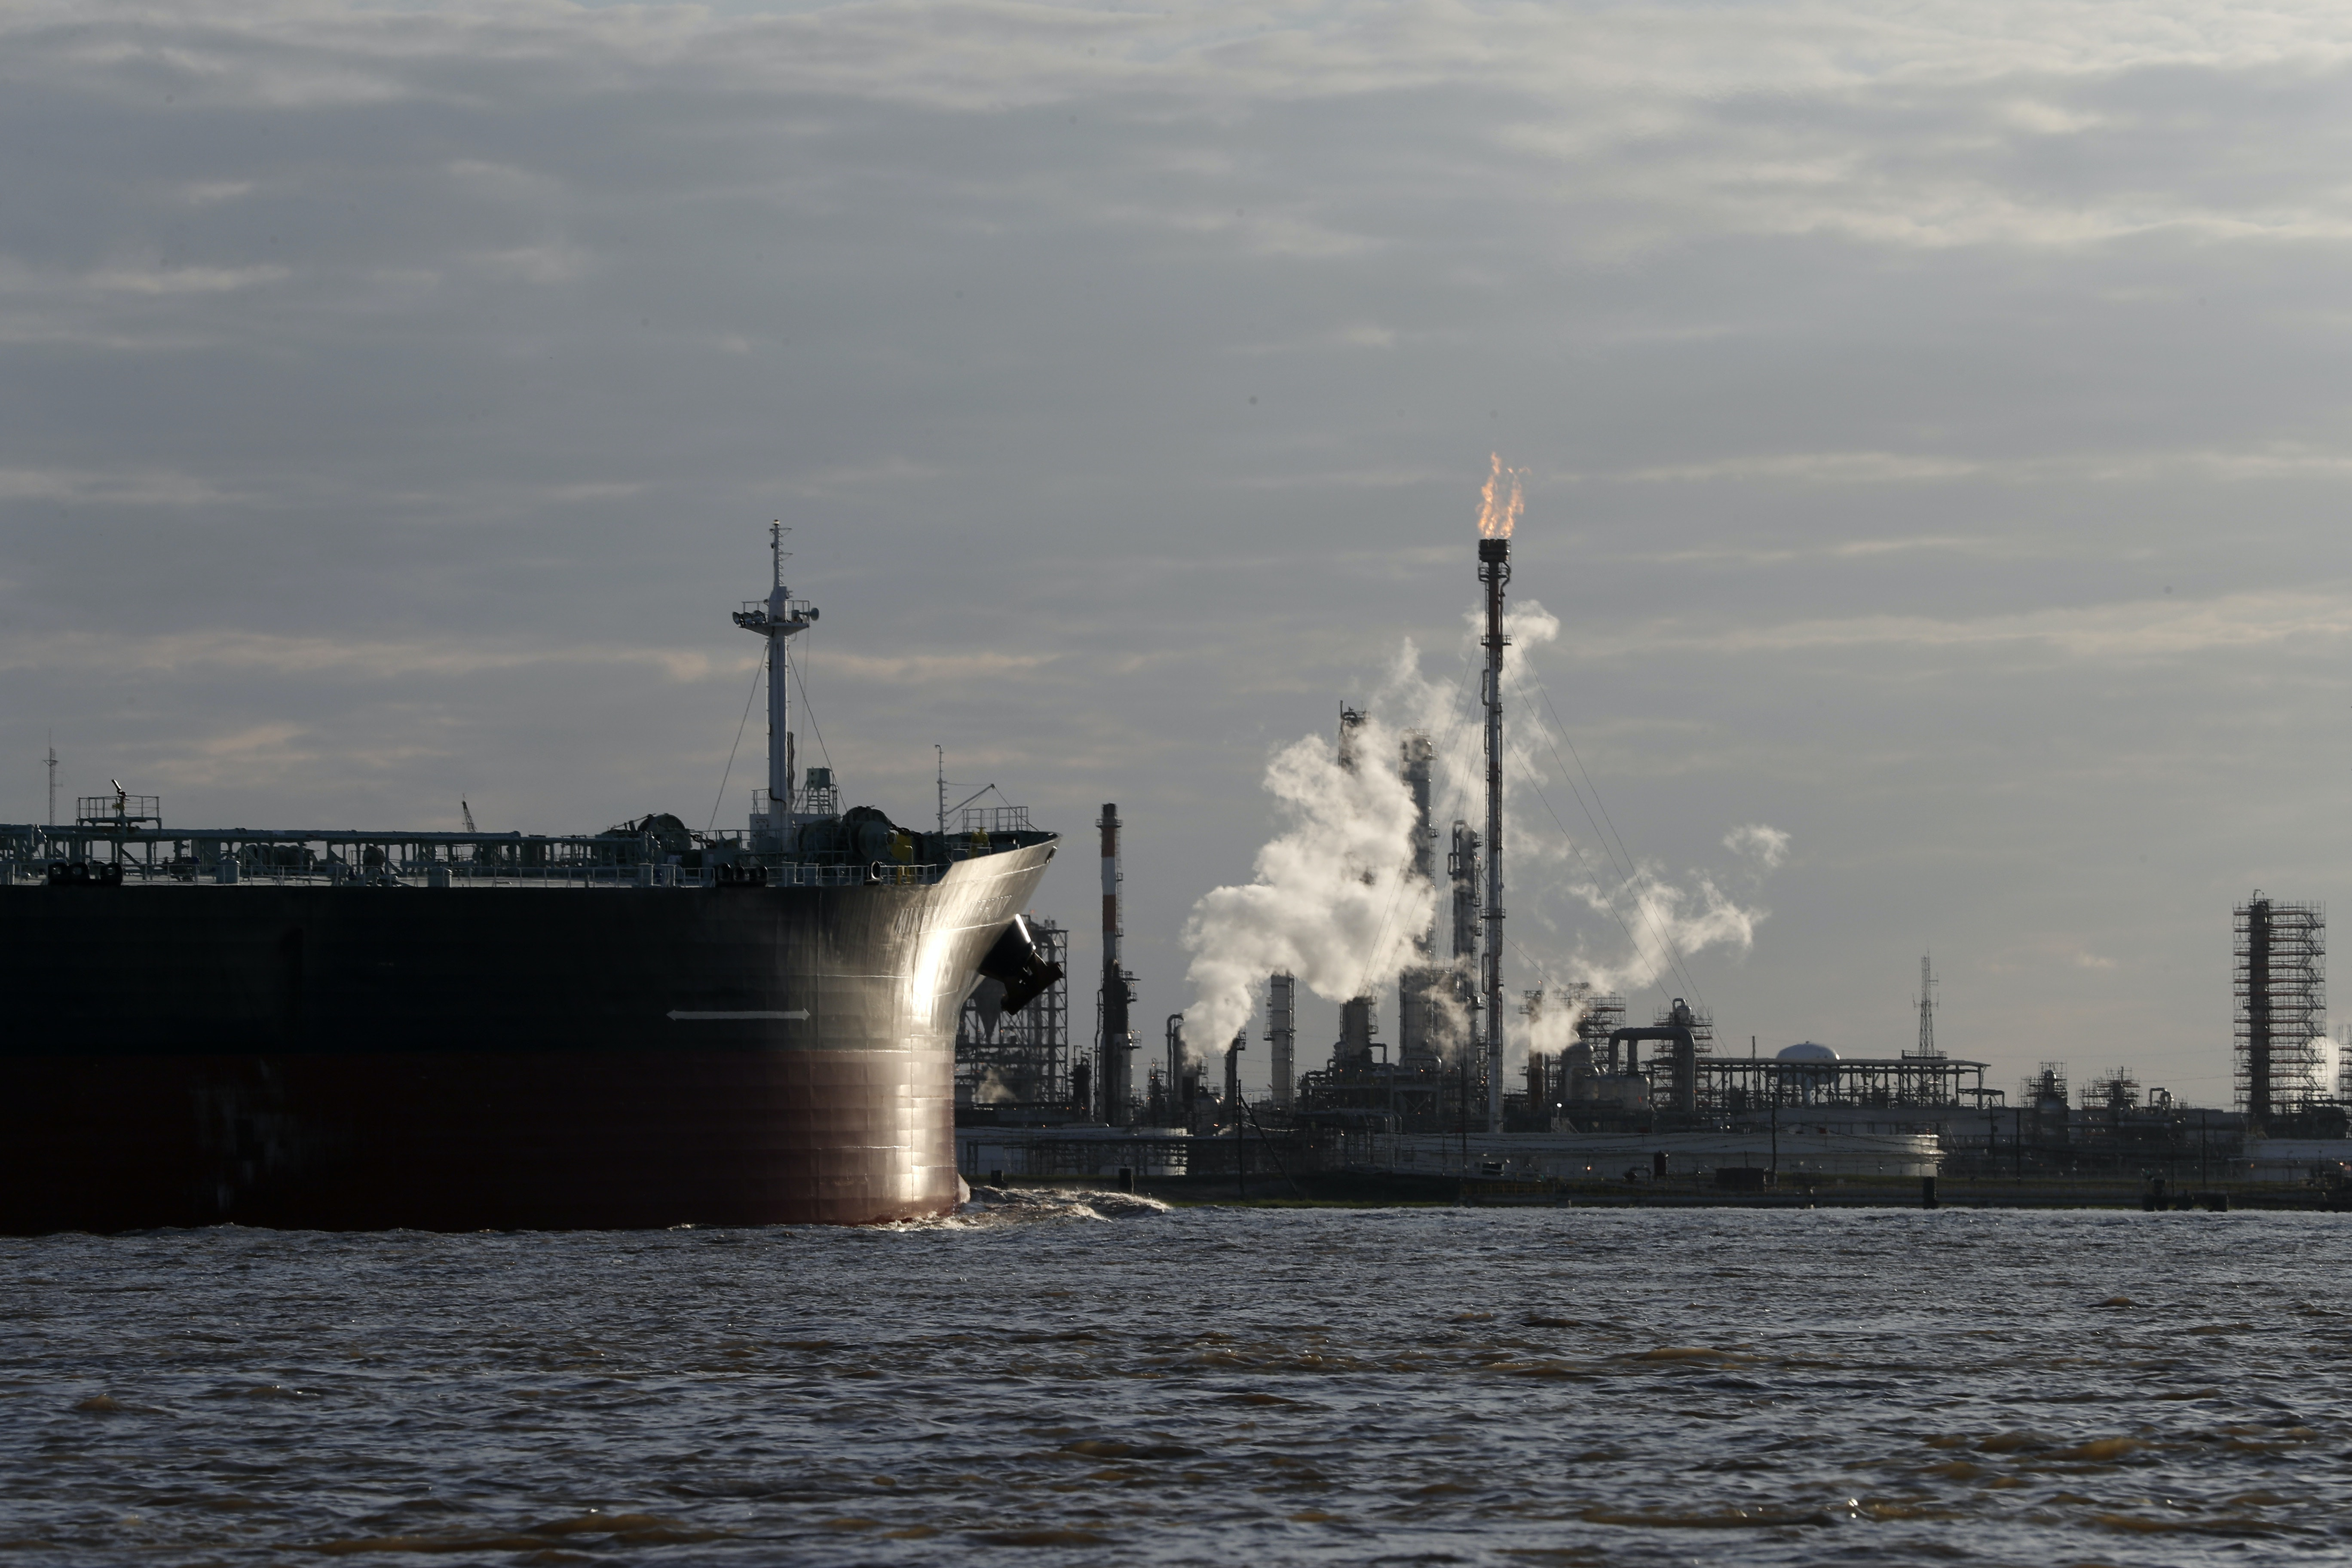 US sanctions on Venezuelan oil could cut the output of refineries at home